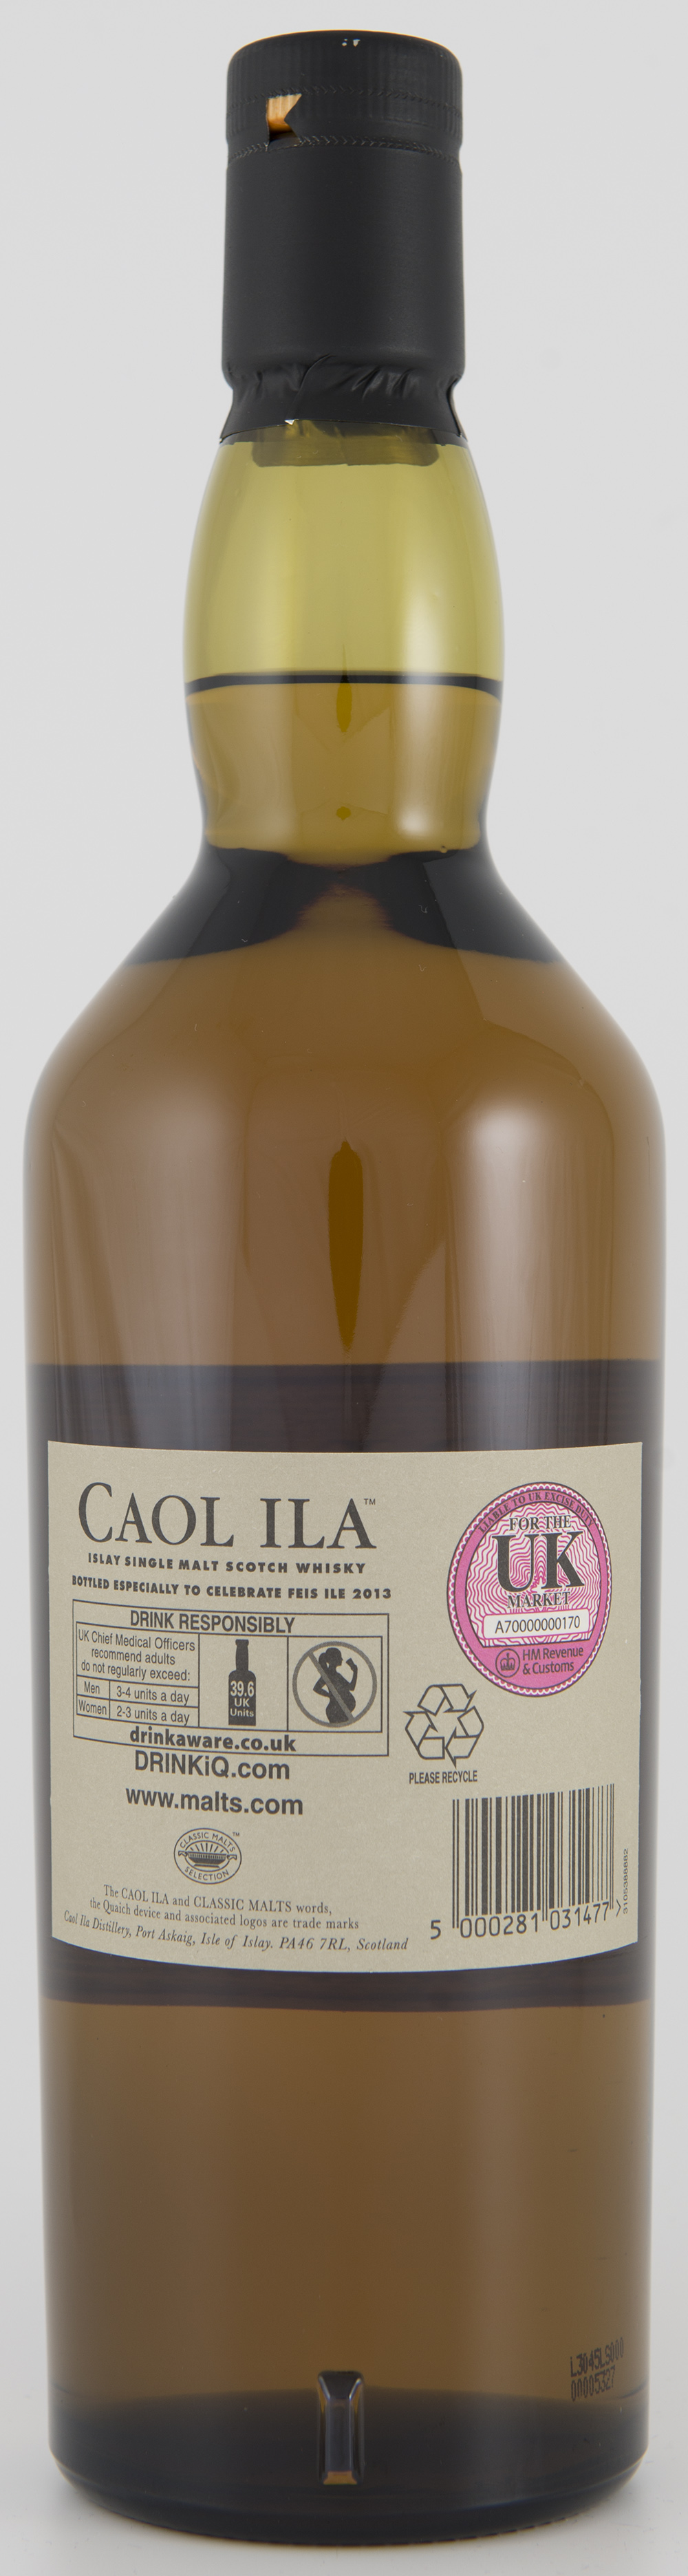 Billede: DSC_3198 Caol Ila - Feis Isle 2013 - bottle - back.jpg